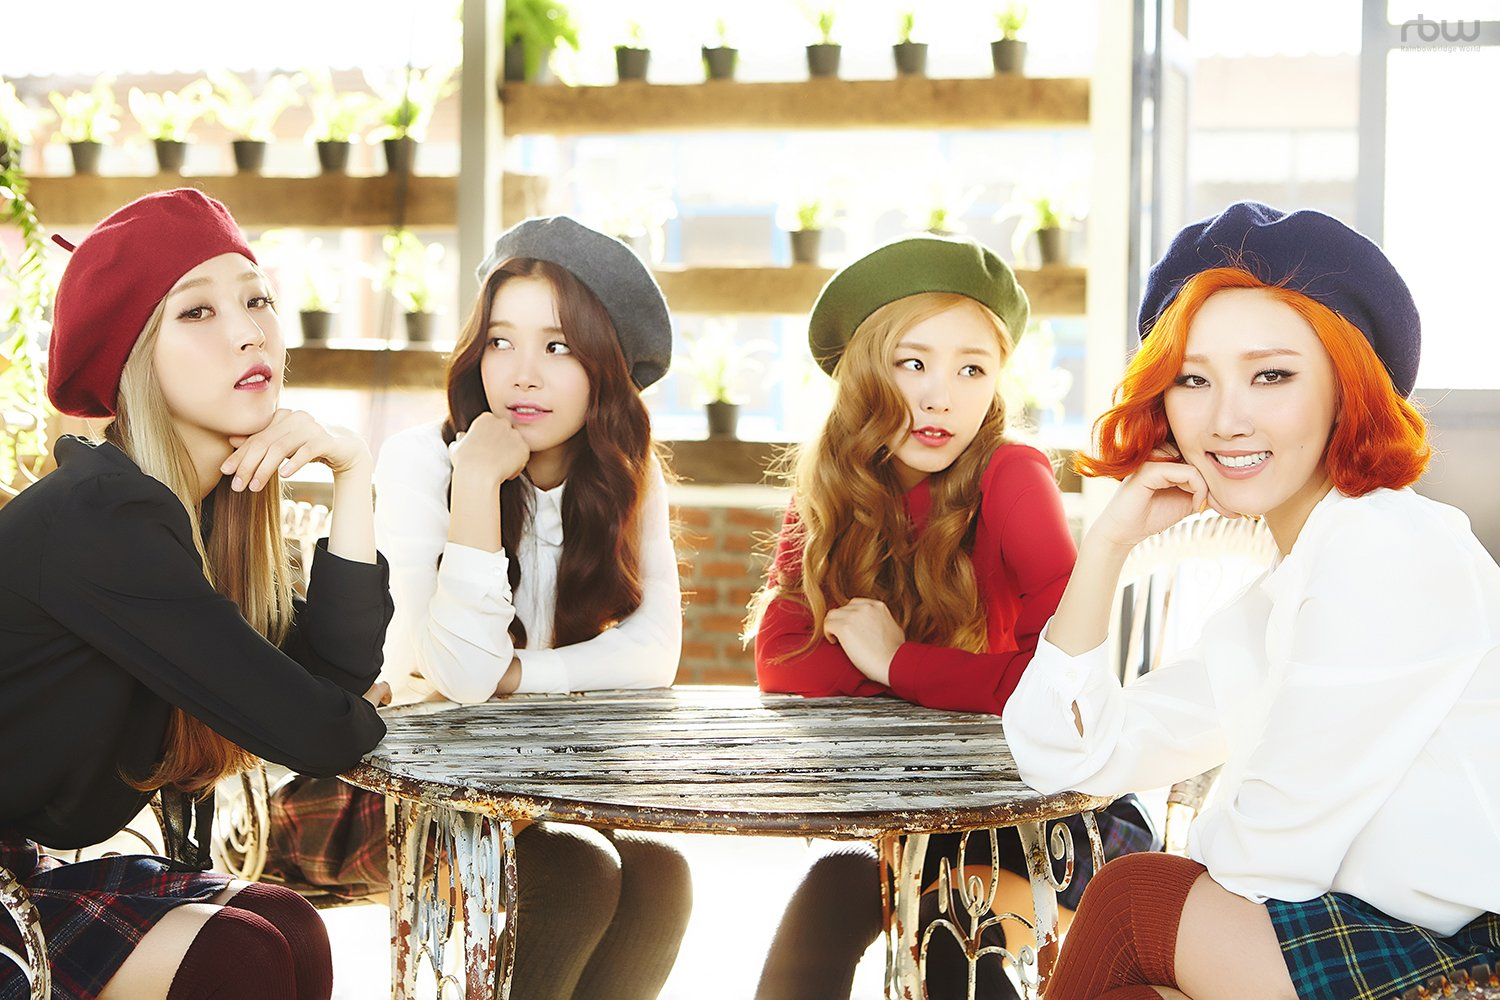 MAMAMOO To Make Cameo Appearance On Entourage